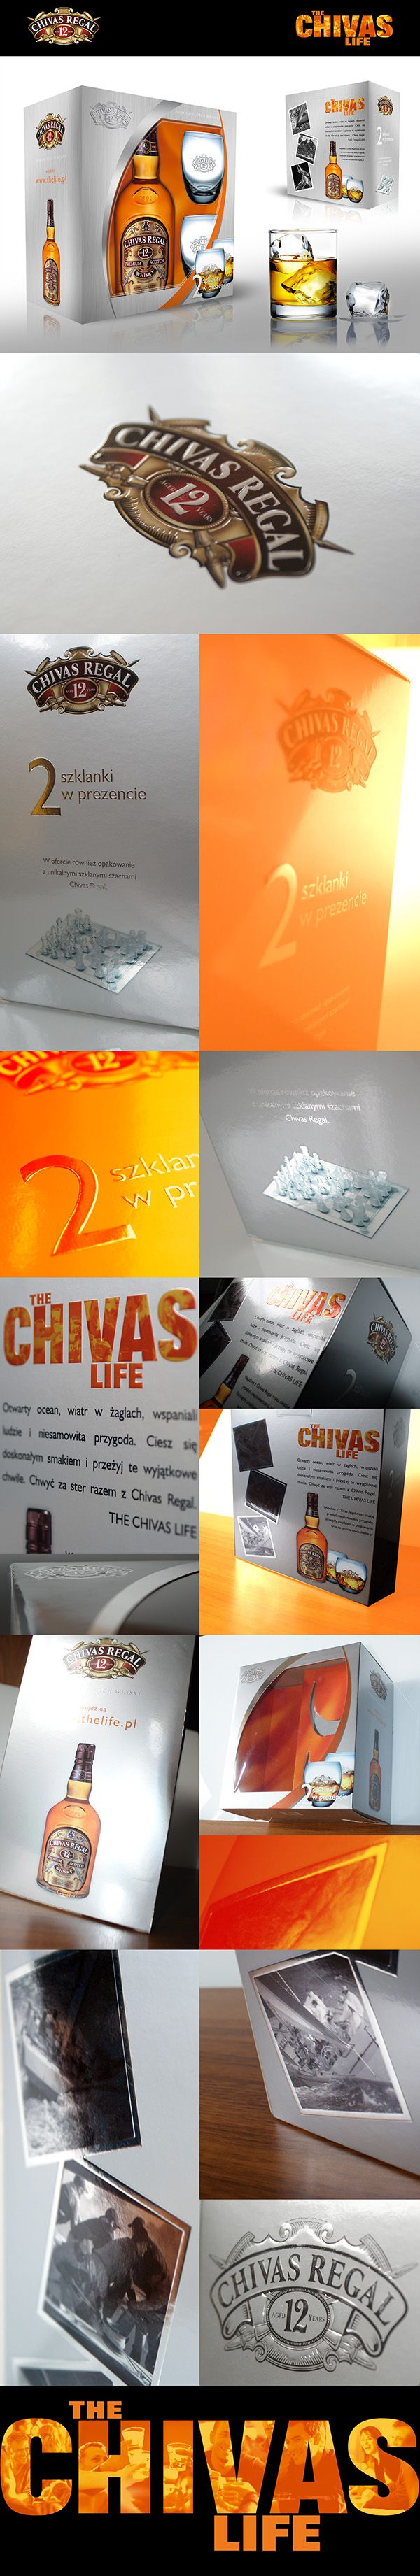 Chivas Regal on-pack promotion for Christmas. Premium packaging - CMYK, Pantone  877, Metalised cardboard, embossing and special effects varnish.